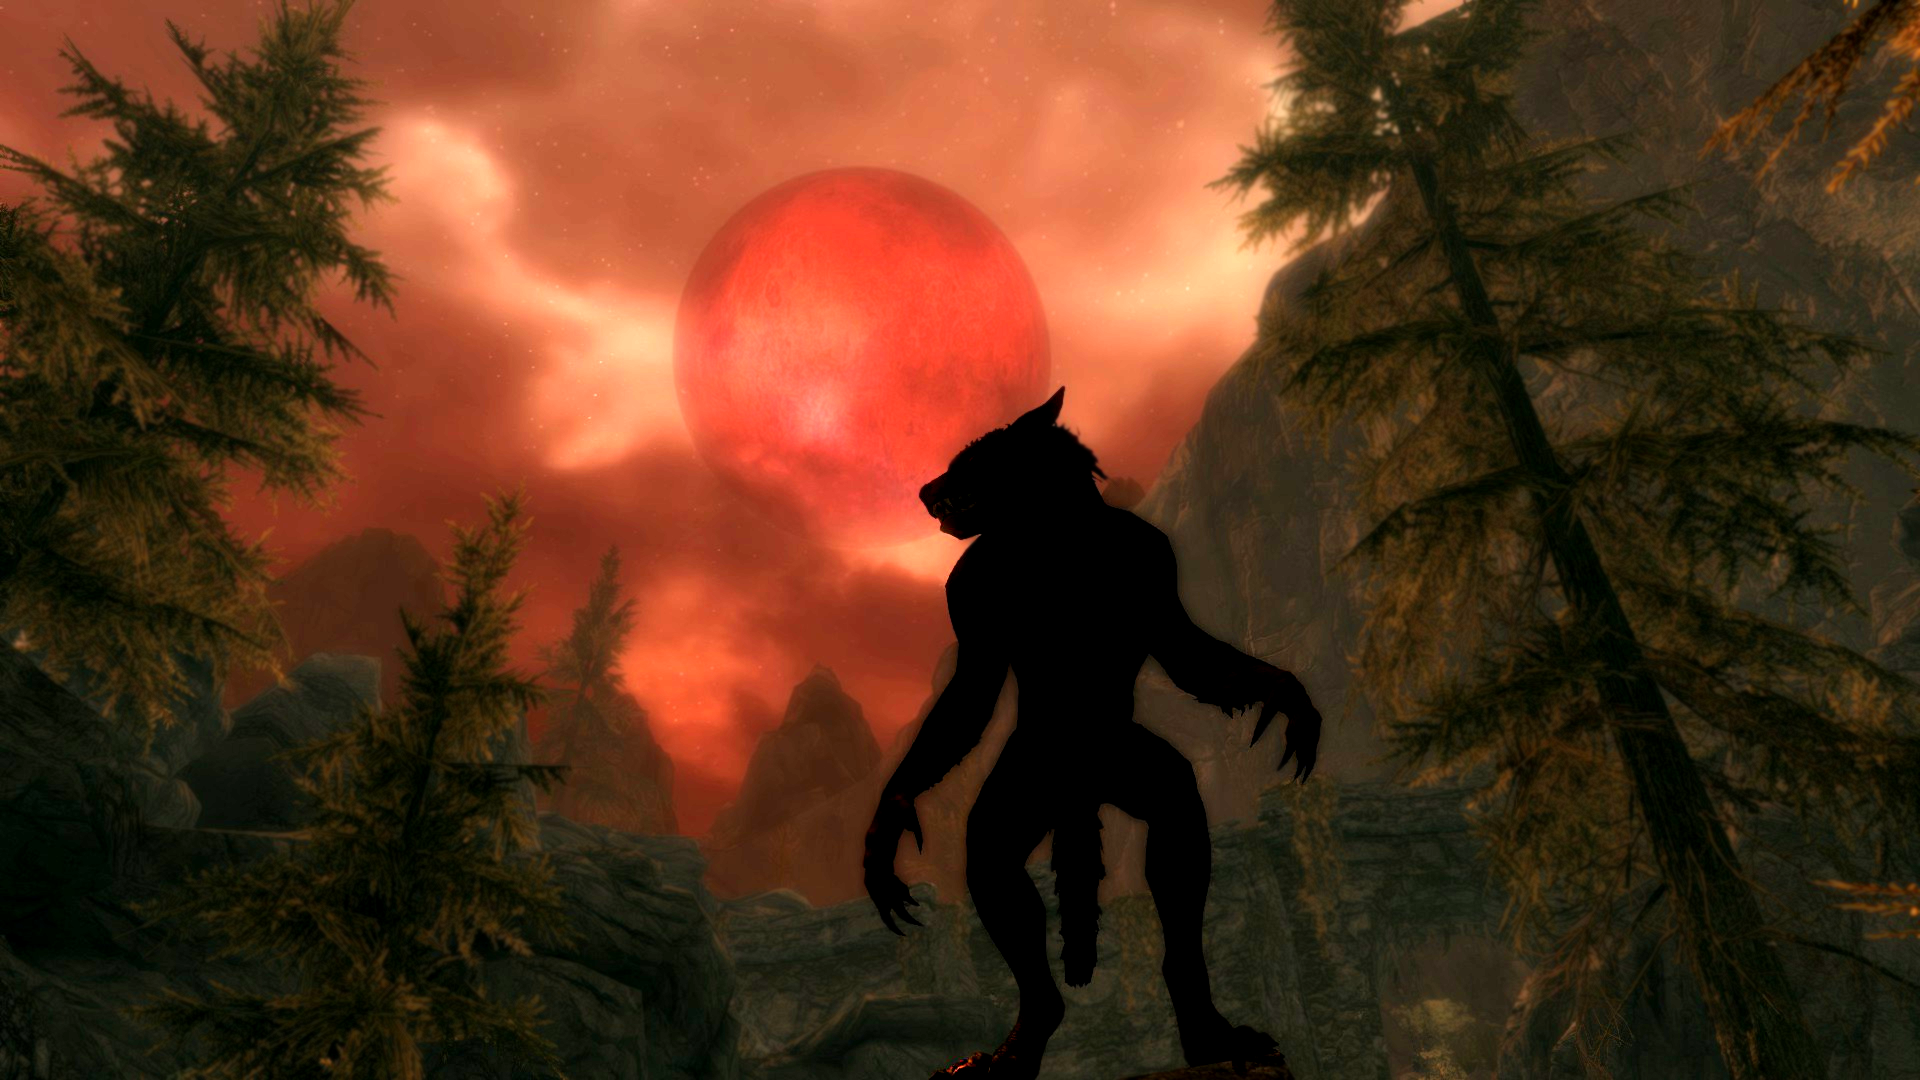 Skyrim werewolf wallpaper hd - photo#10